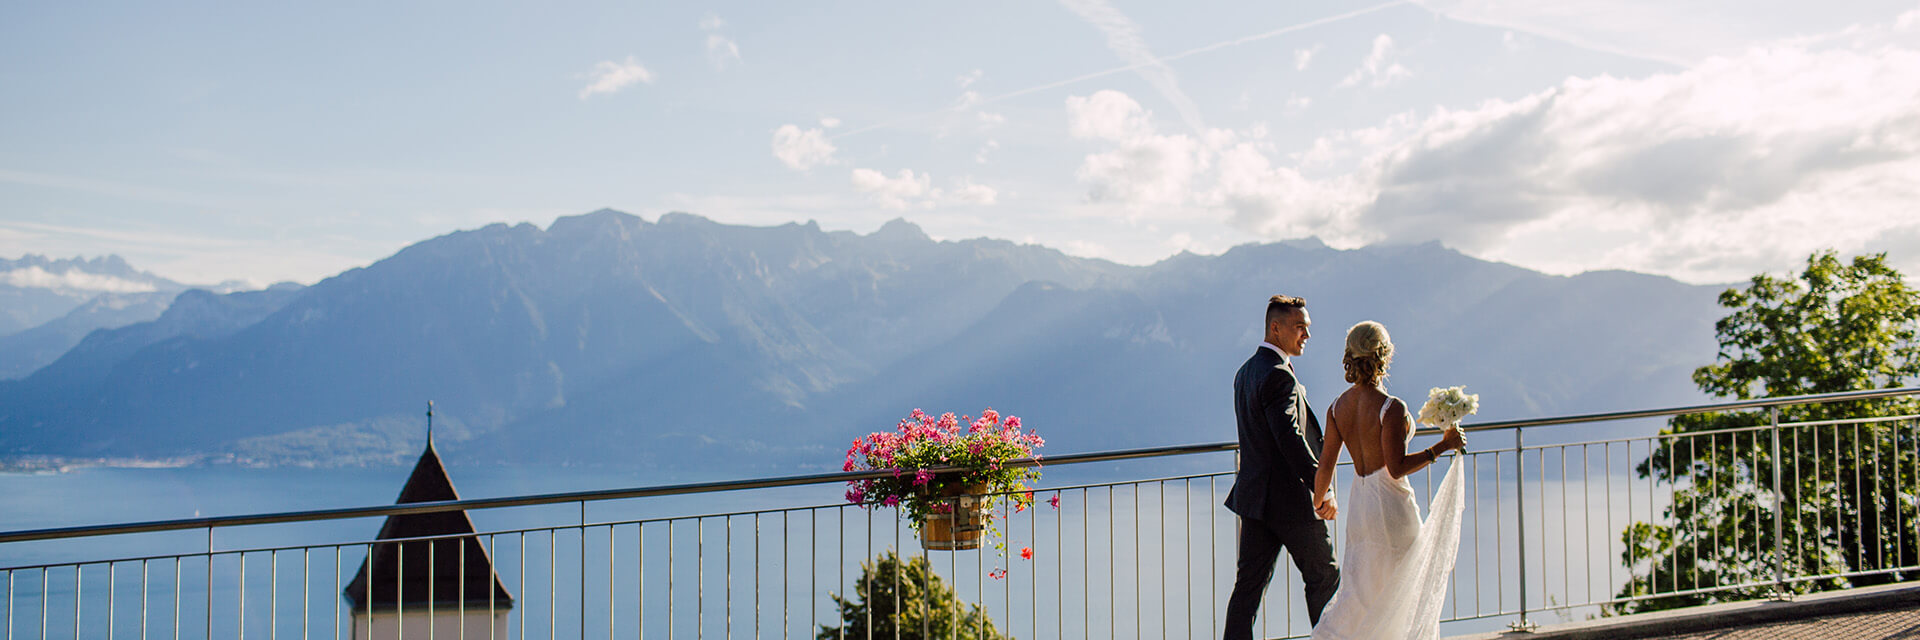 wedding bride groom Geneva Switzerland Lake Photographer